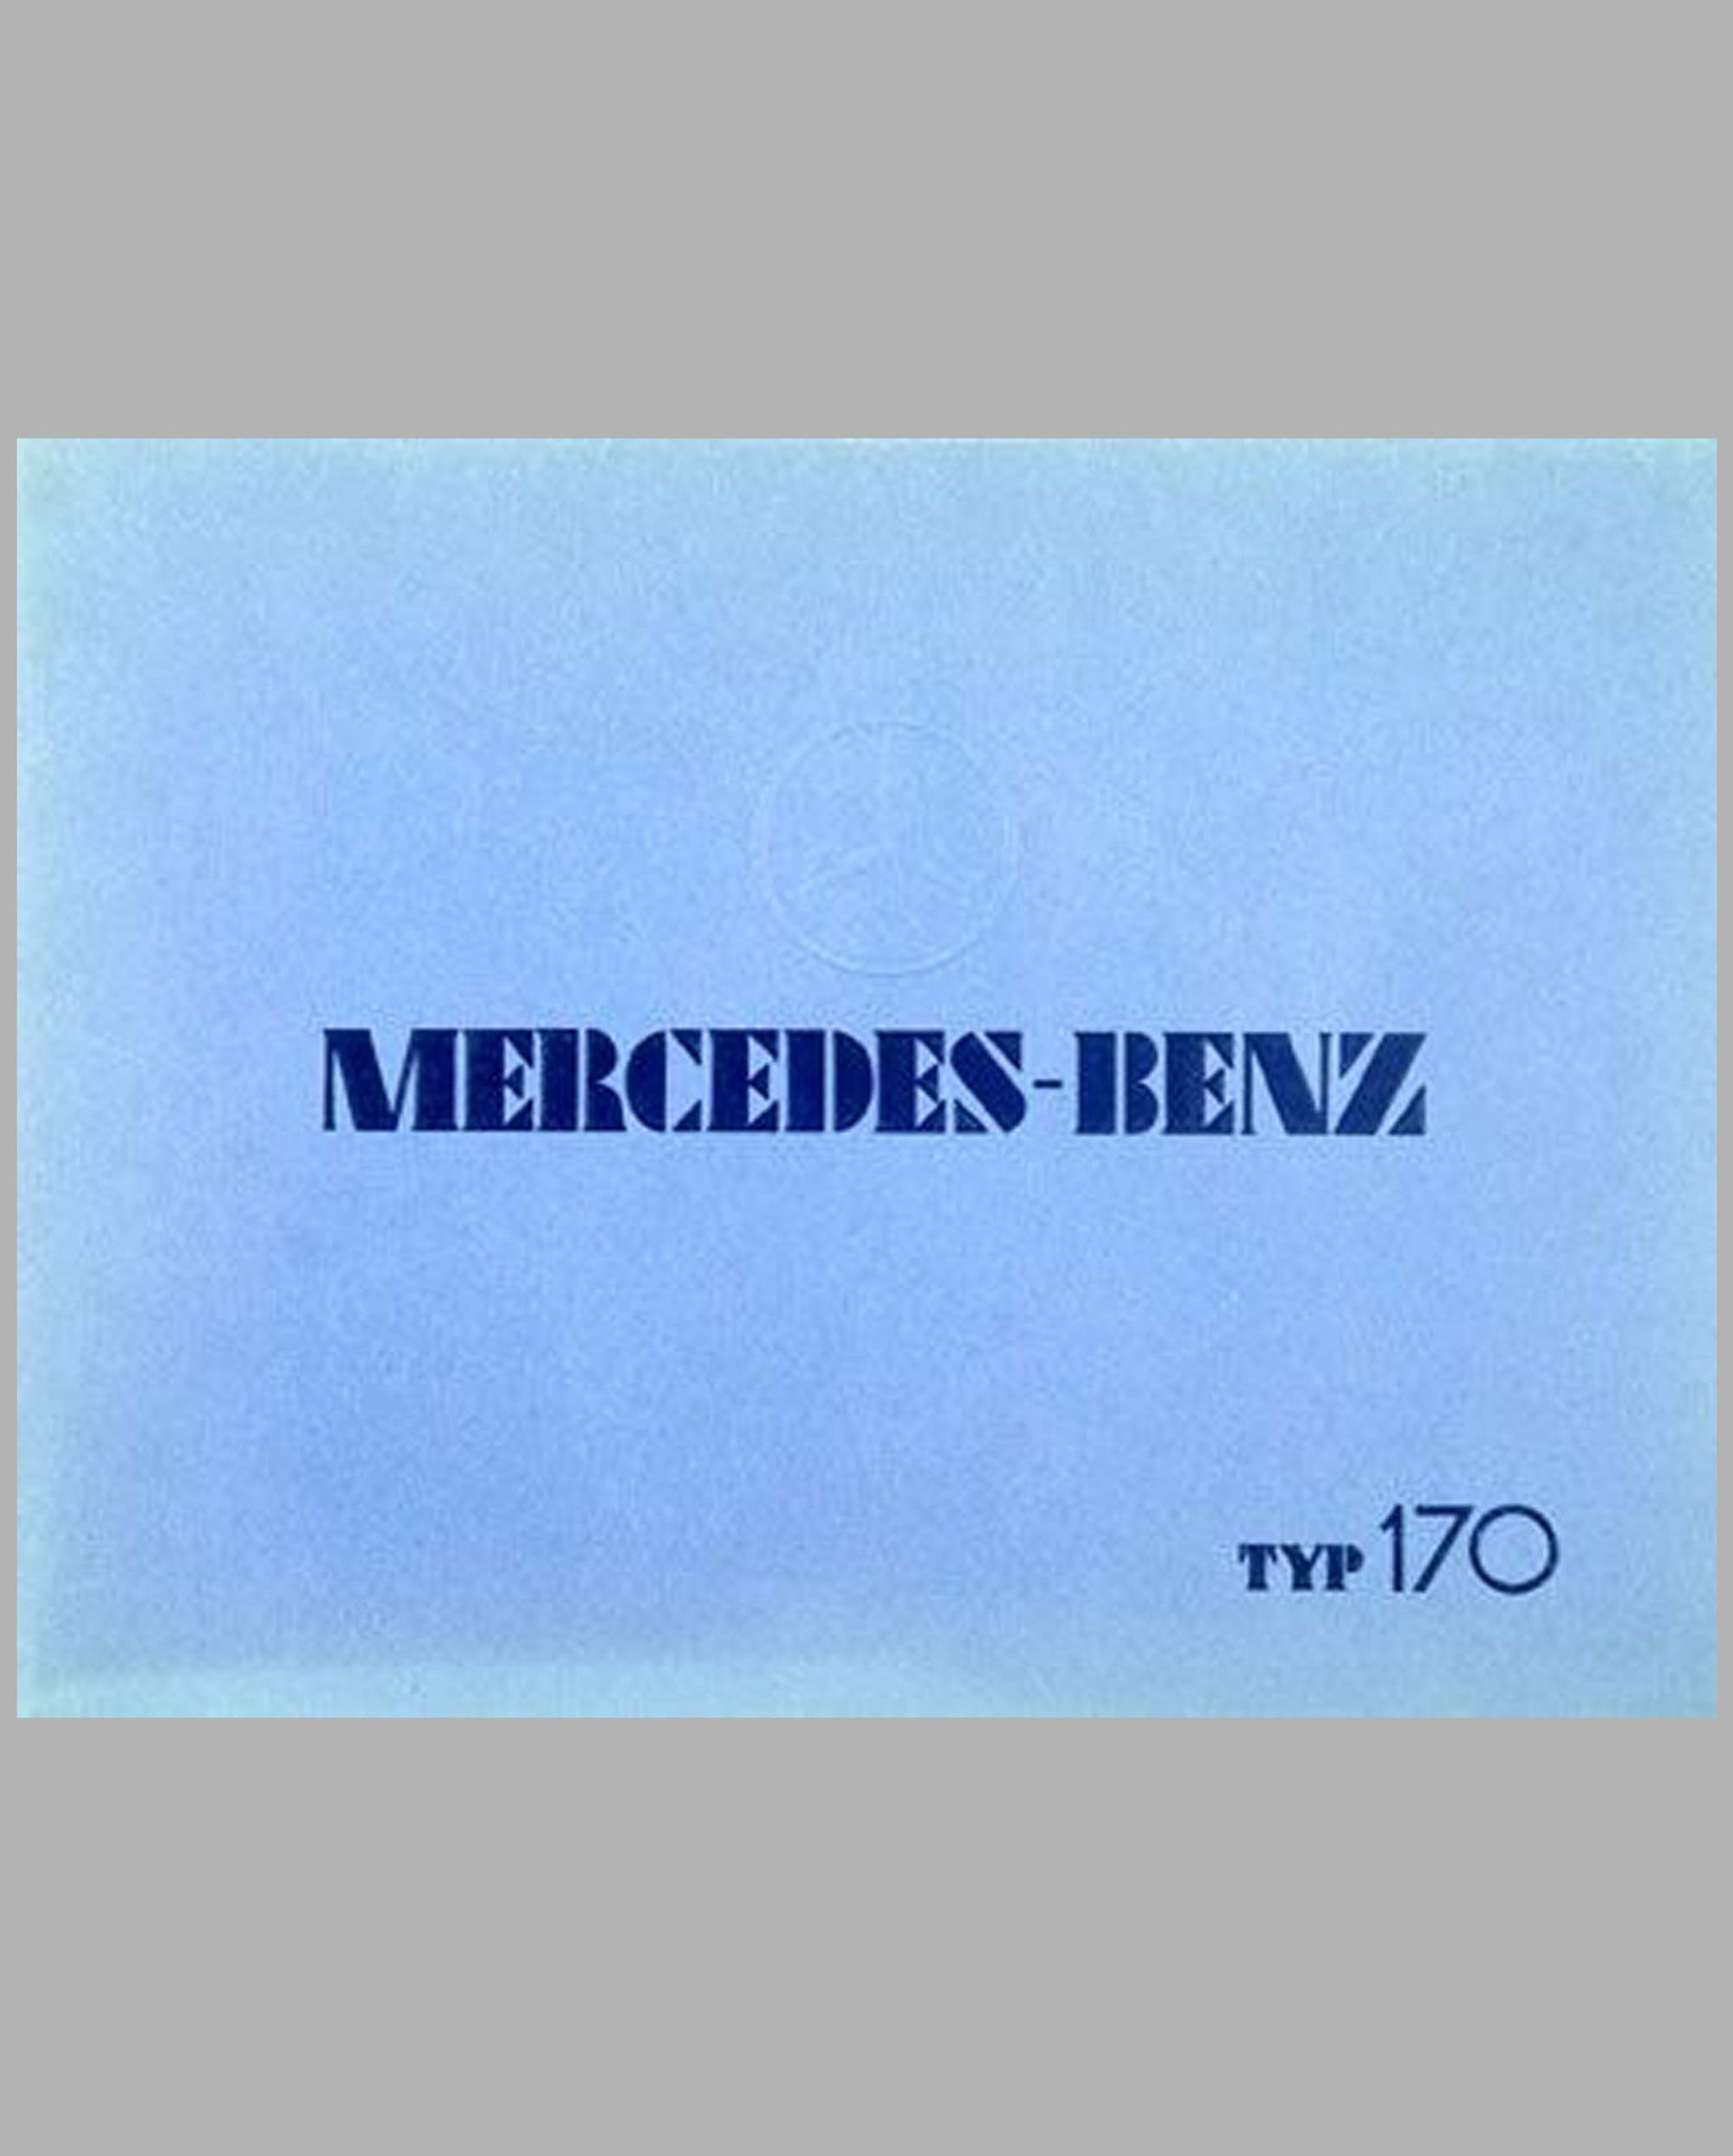 Mercedes-Benz Type 170 prestige color catalog factory reprint